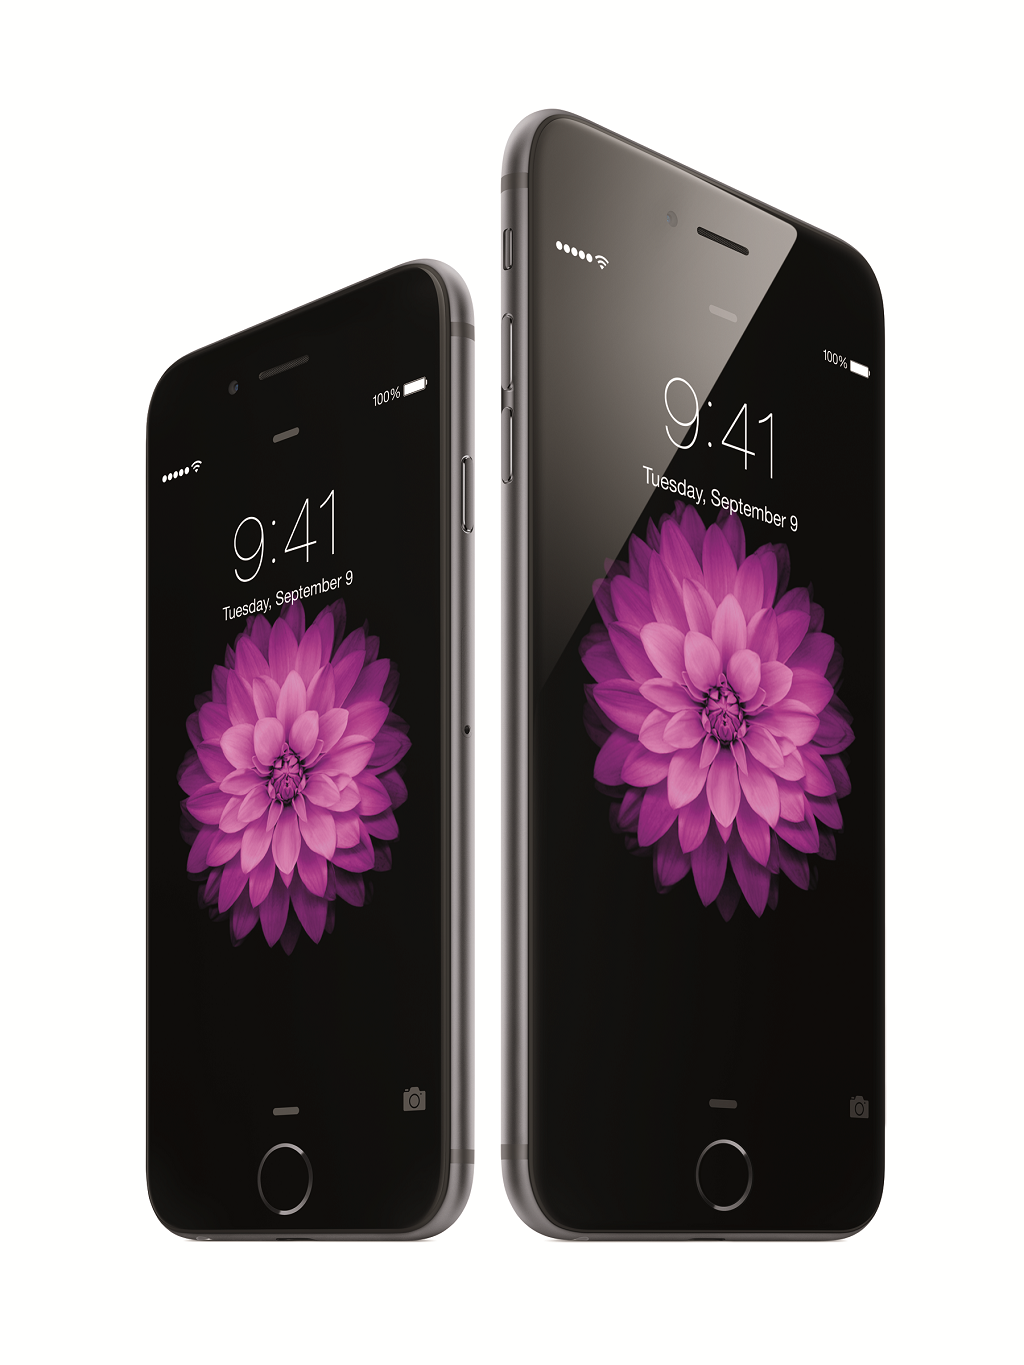 iPhone Upgrade Time iPhone6 34R SpGry iPhone6Plus 34L SpGry flwr PNG 96